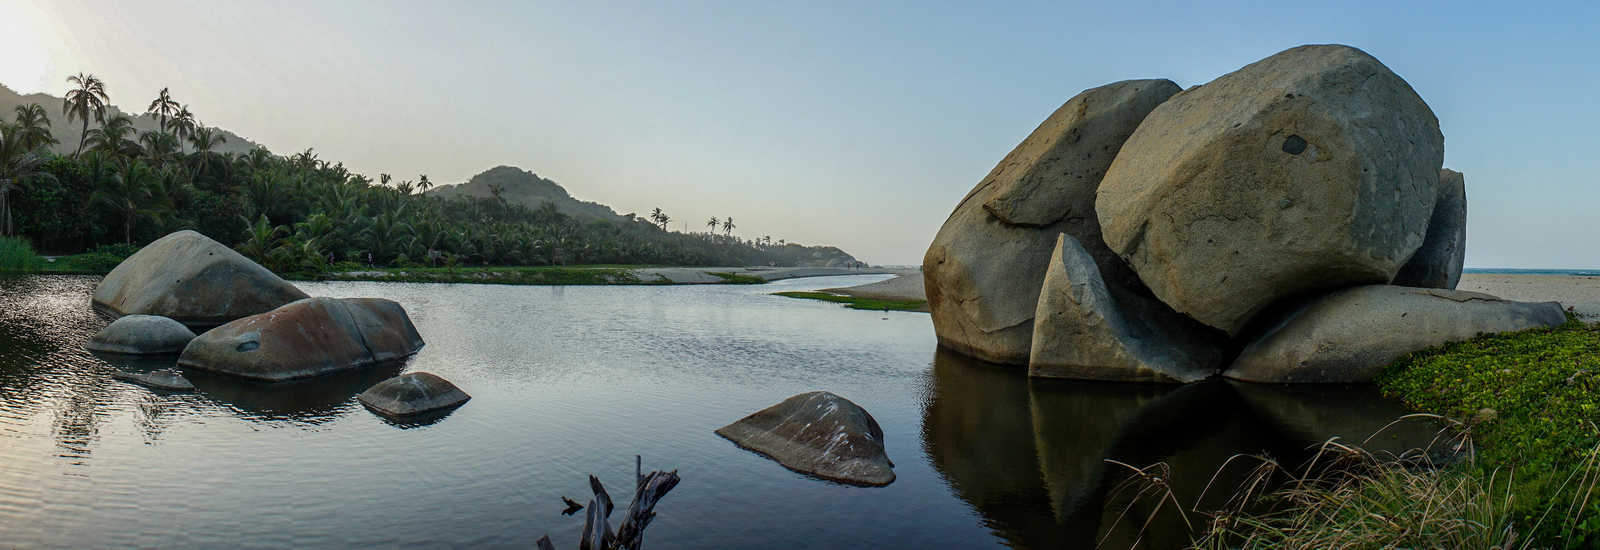 Feature Boulders on Tropical Beach in Tayrona National Park, Colombia.